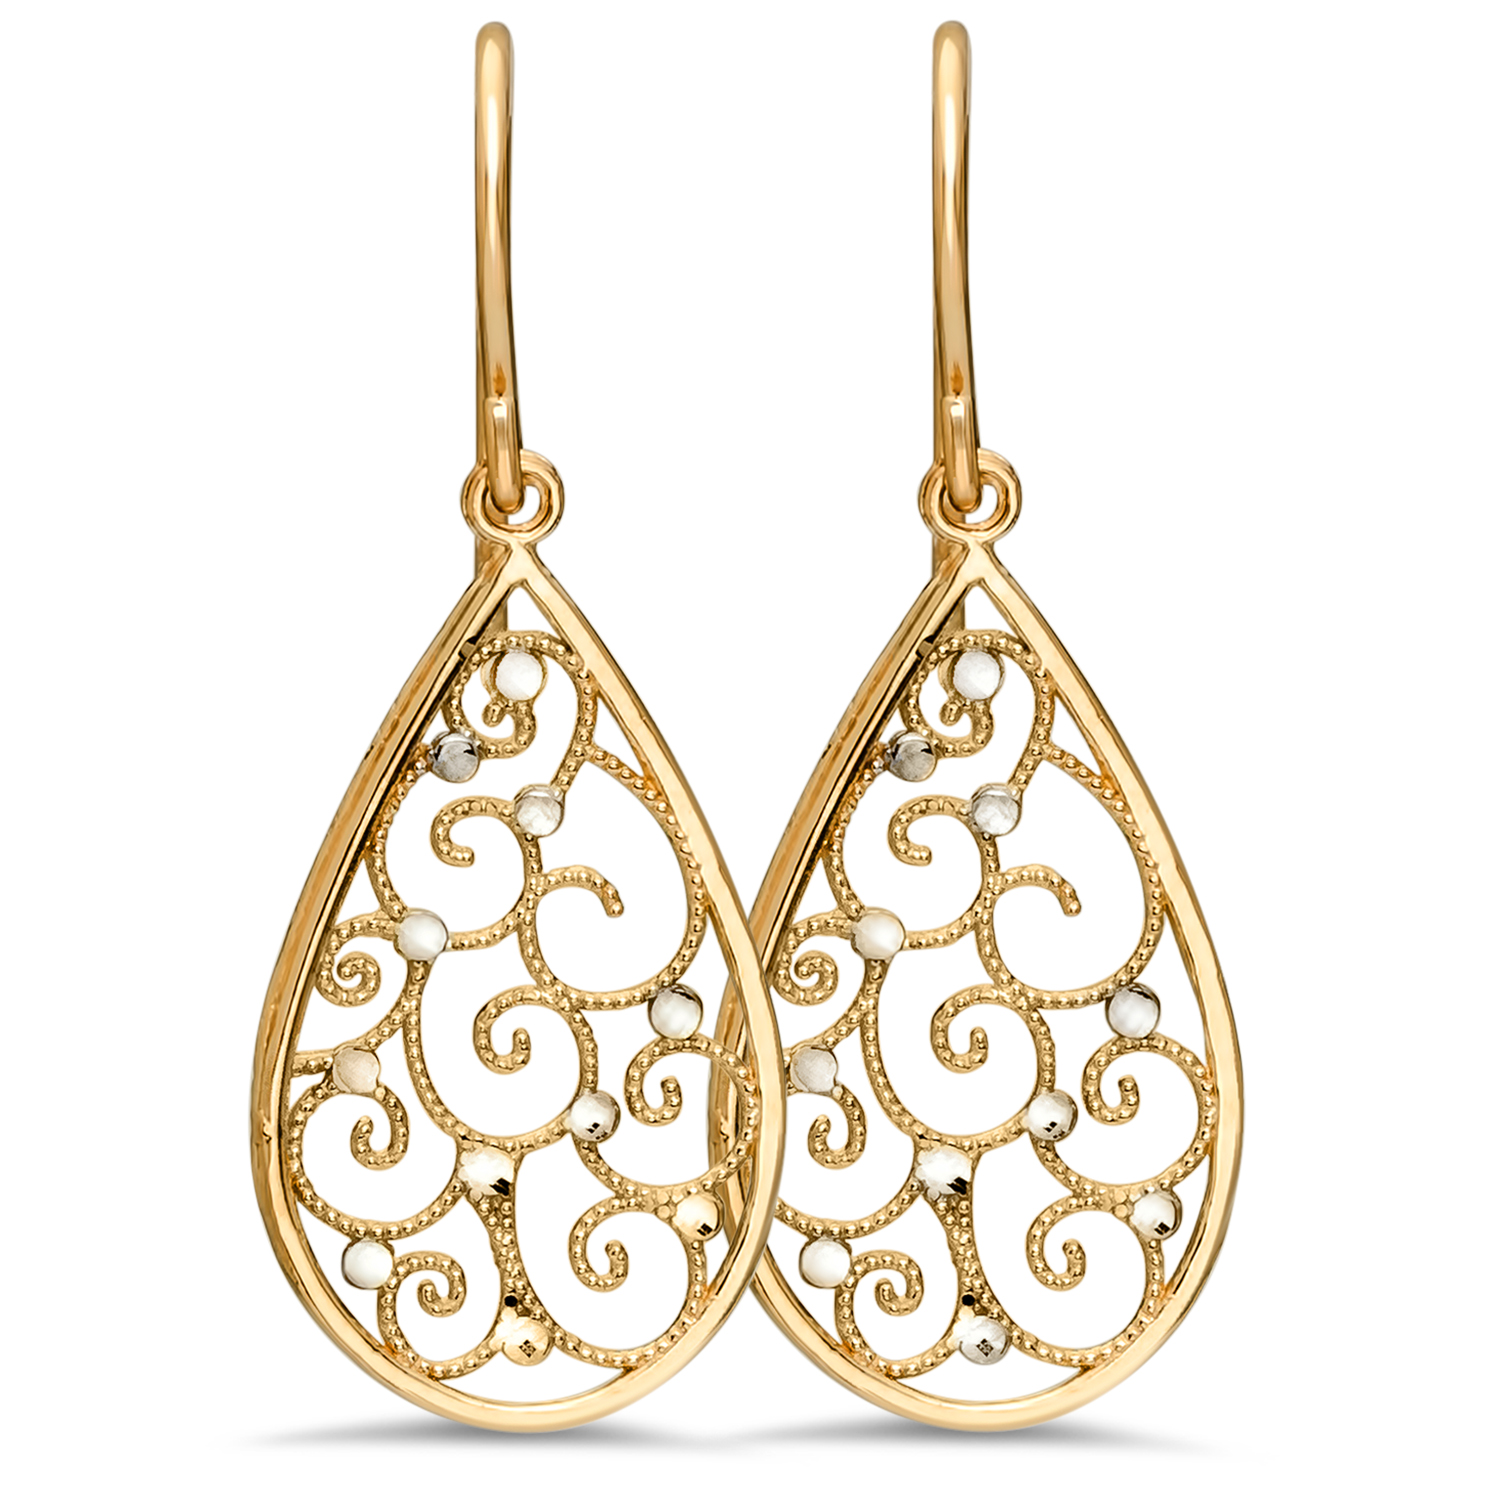 14k Gold Rhodium Polished Teardrop Earrings